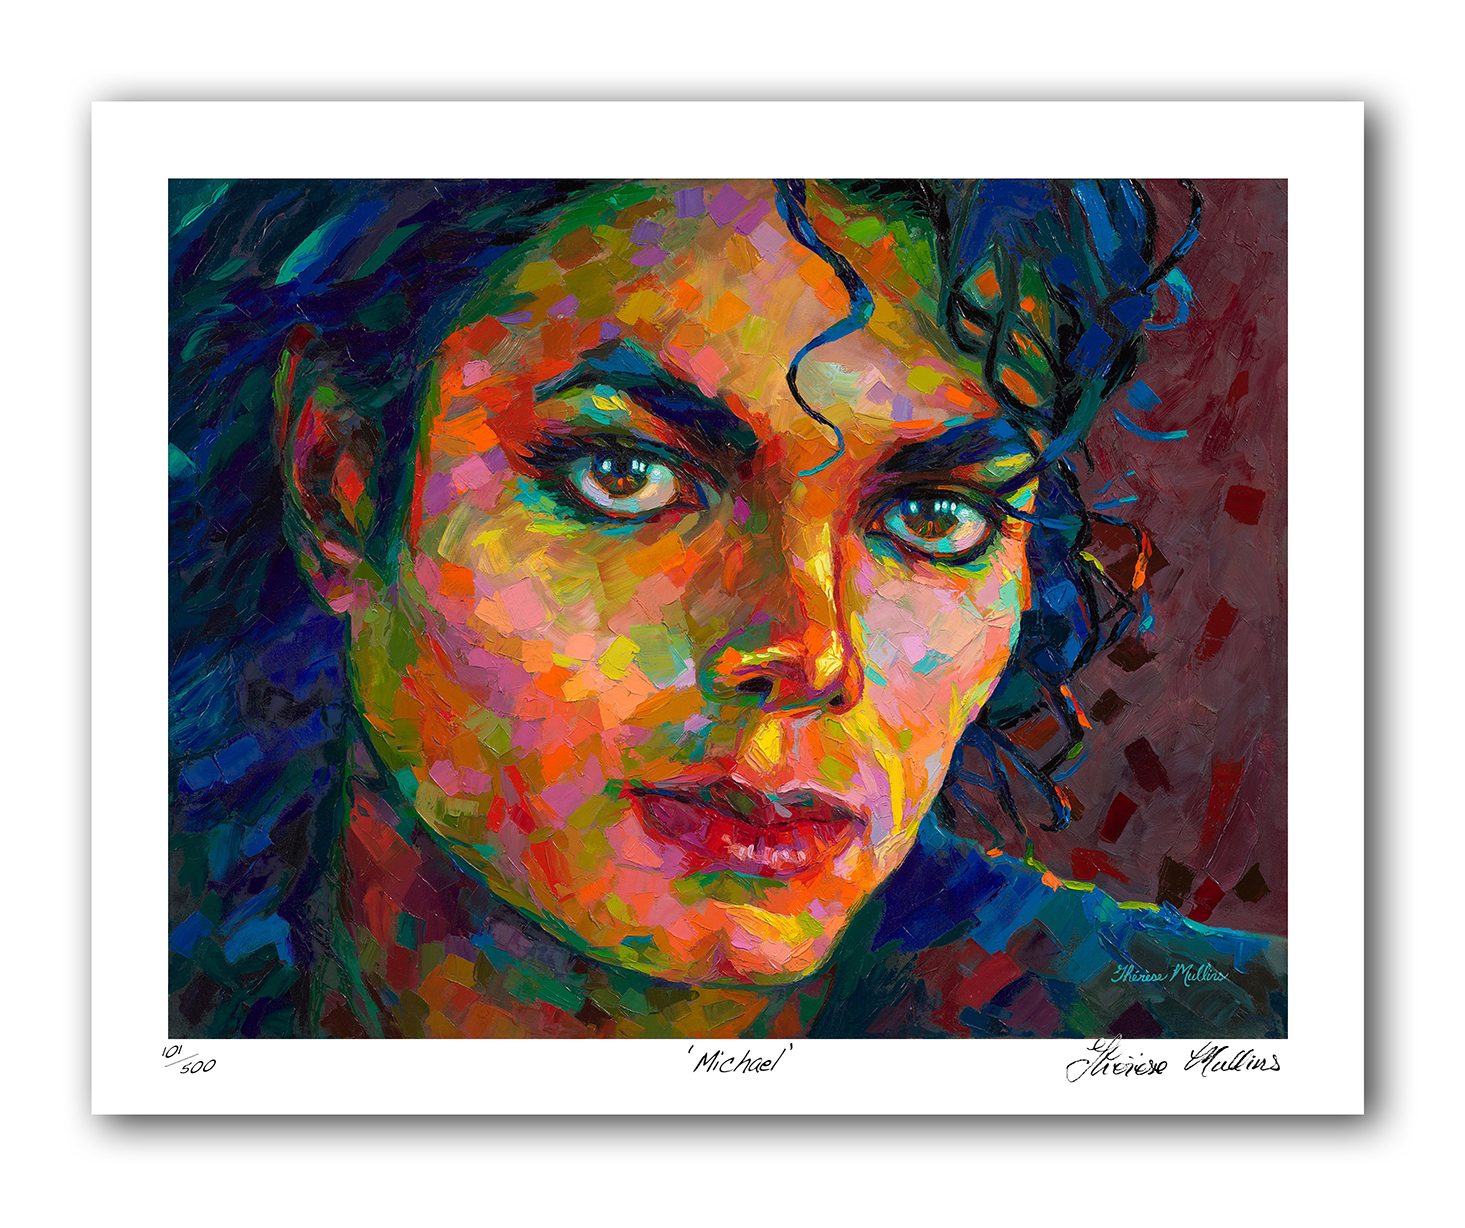 The Studio Art Gallery - Michael Jackson by Therese Mullins - Artist Print on Paper